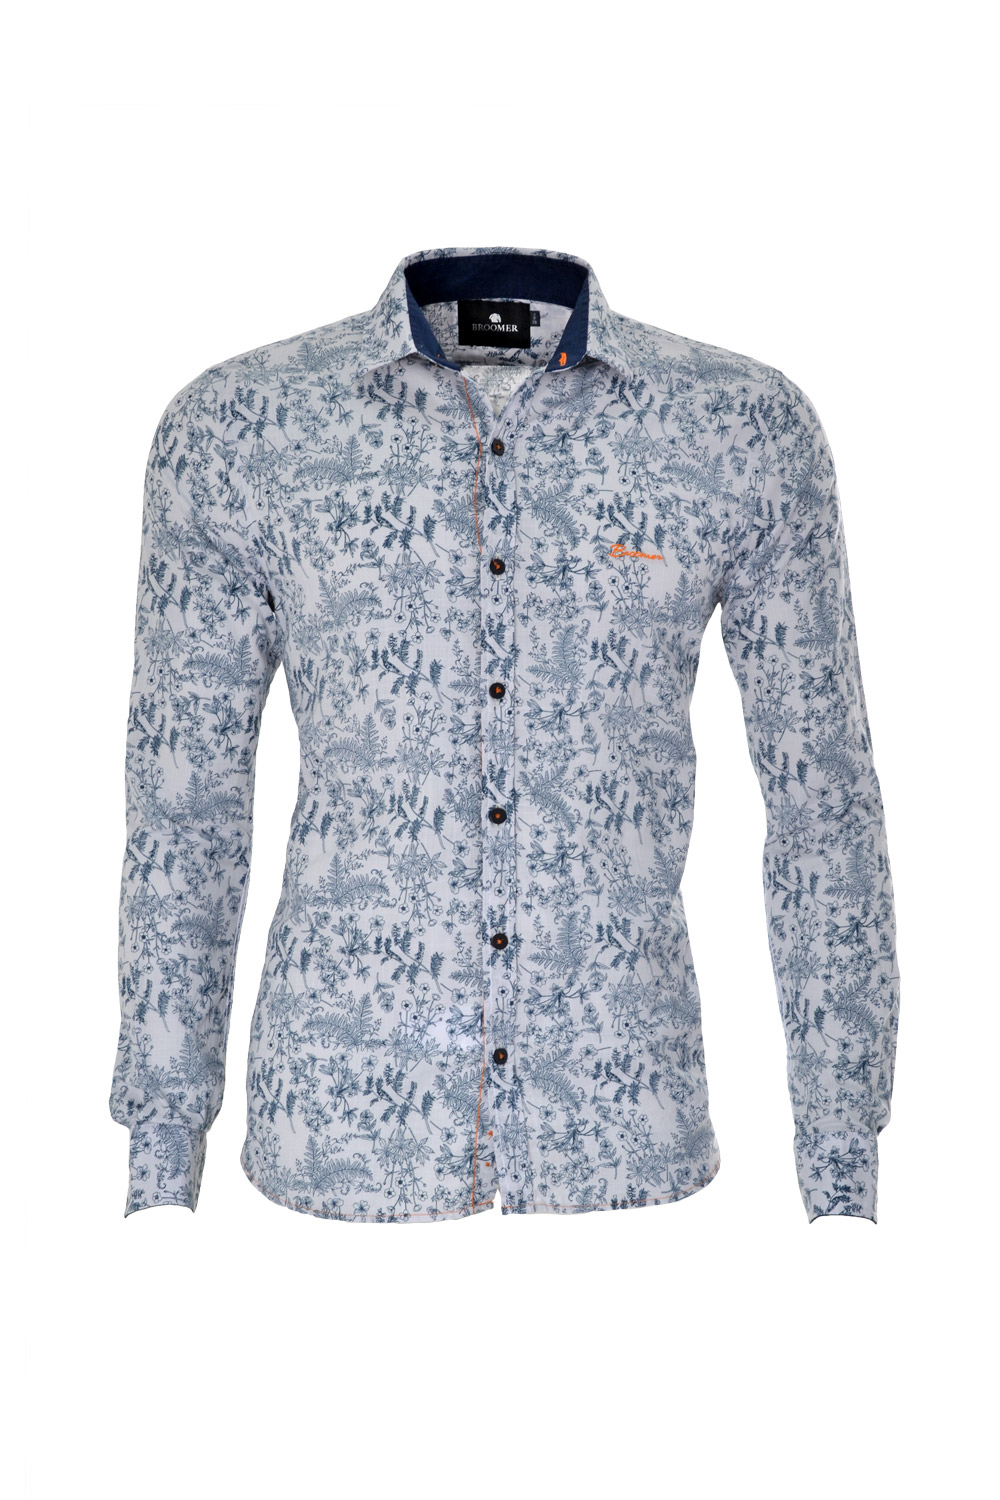 CAMISA ML BLUES SUPER SLIM ALGODAO TRENDY ESTAMPA AZUL MARINHO